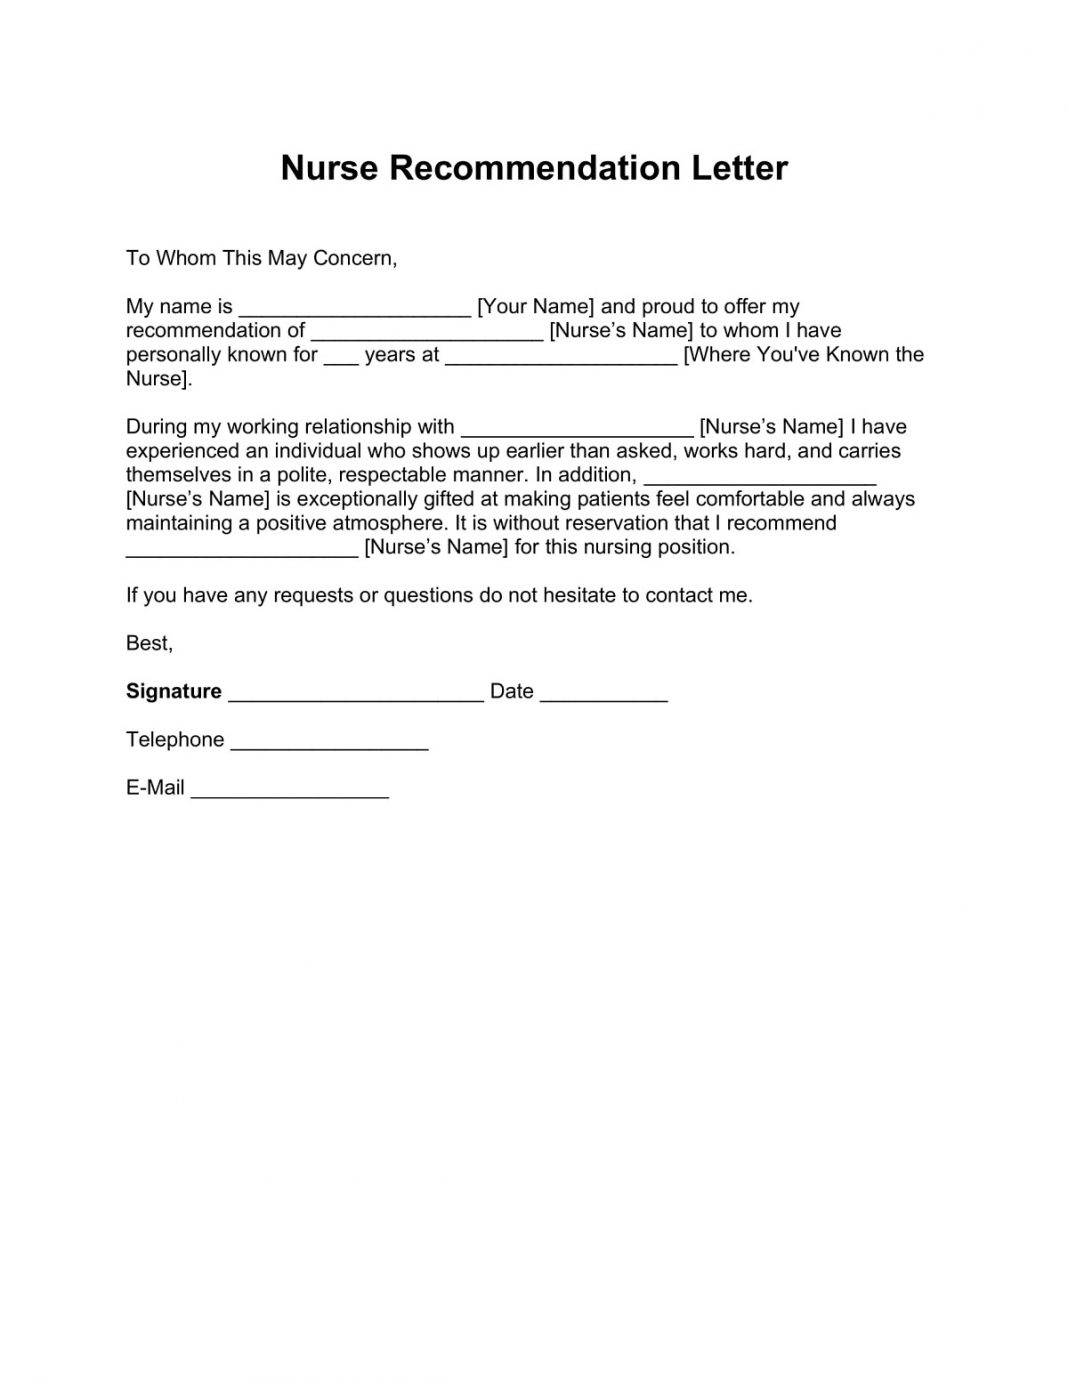 Registered Nurse Letter Of Recommendation Sample For College Student Format Teacher Employee From Manager  Template Samples Large